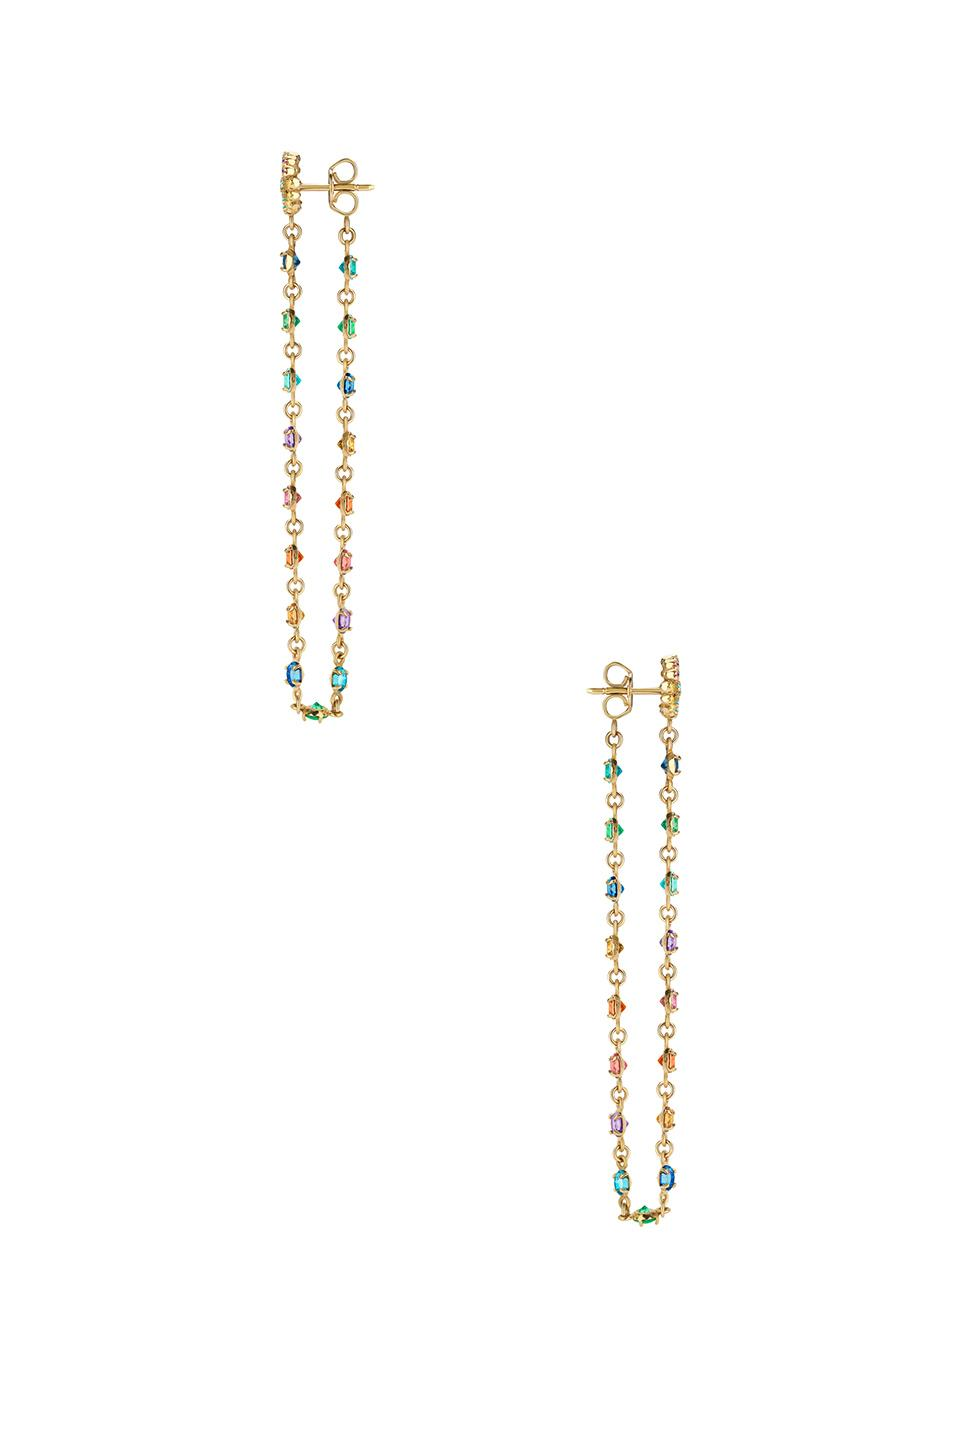 fbc211b7c08 Gucci Double-G Multistone Chain Stud Earrings In 18Kt Yellow Gold    Multicolor